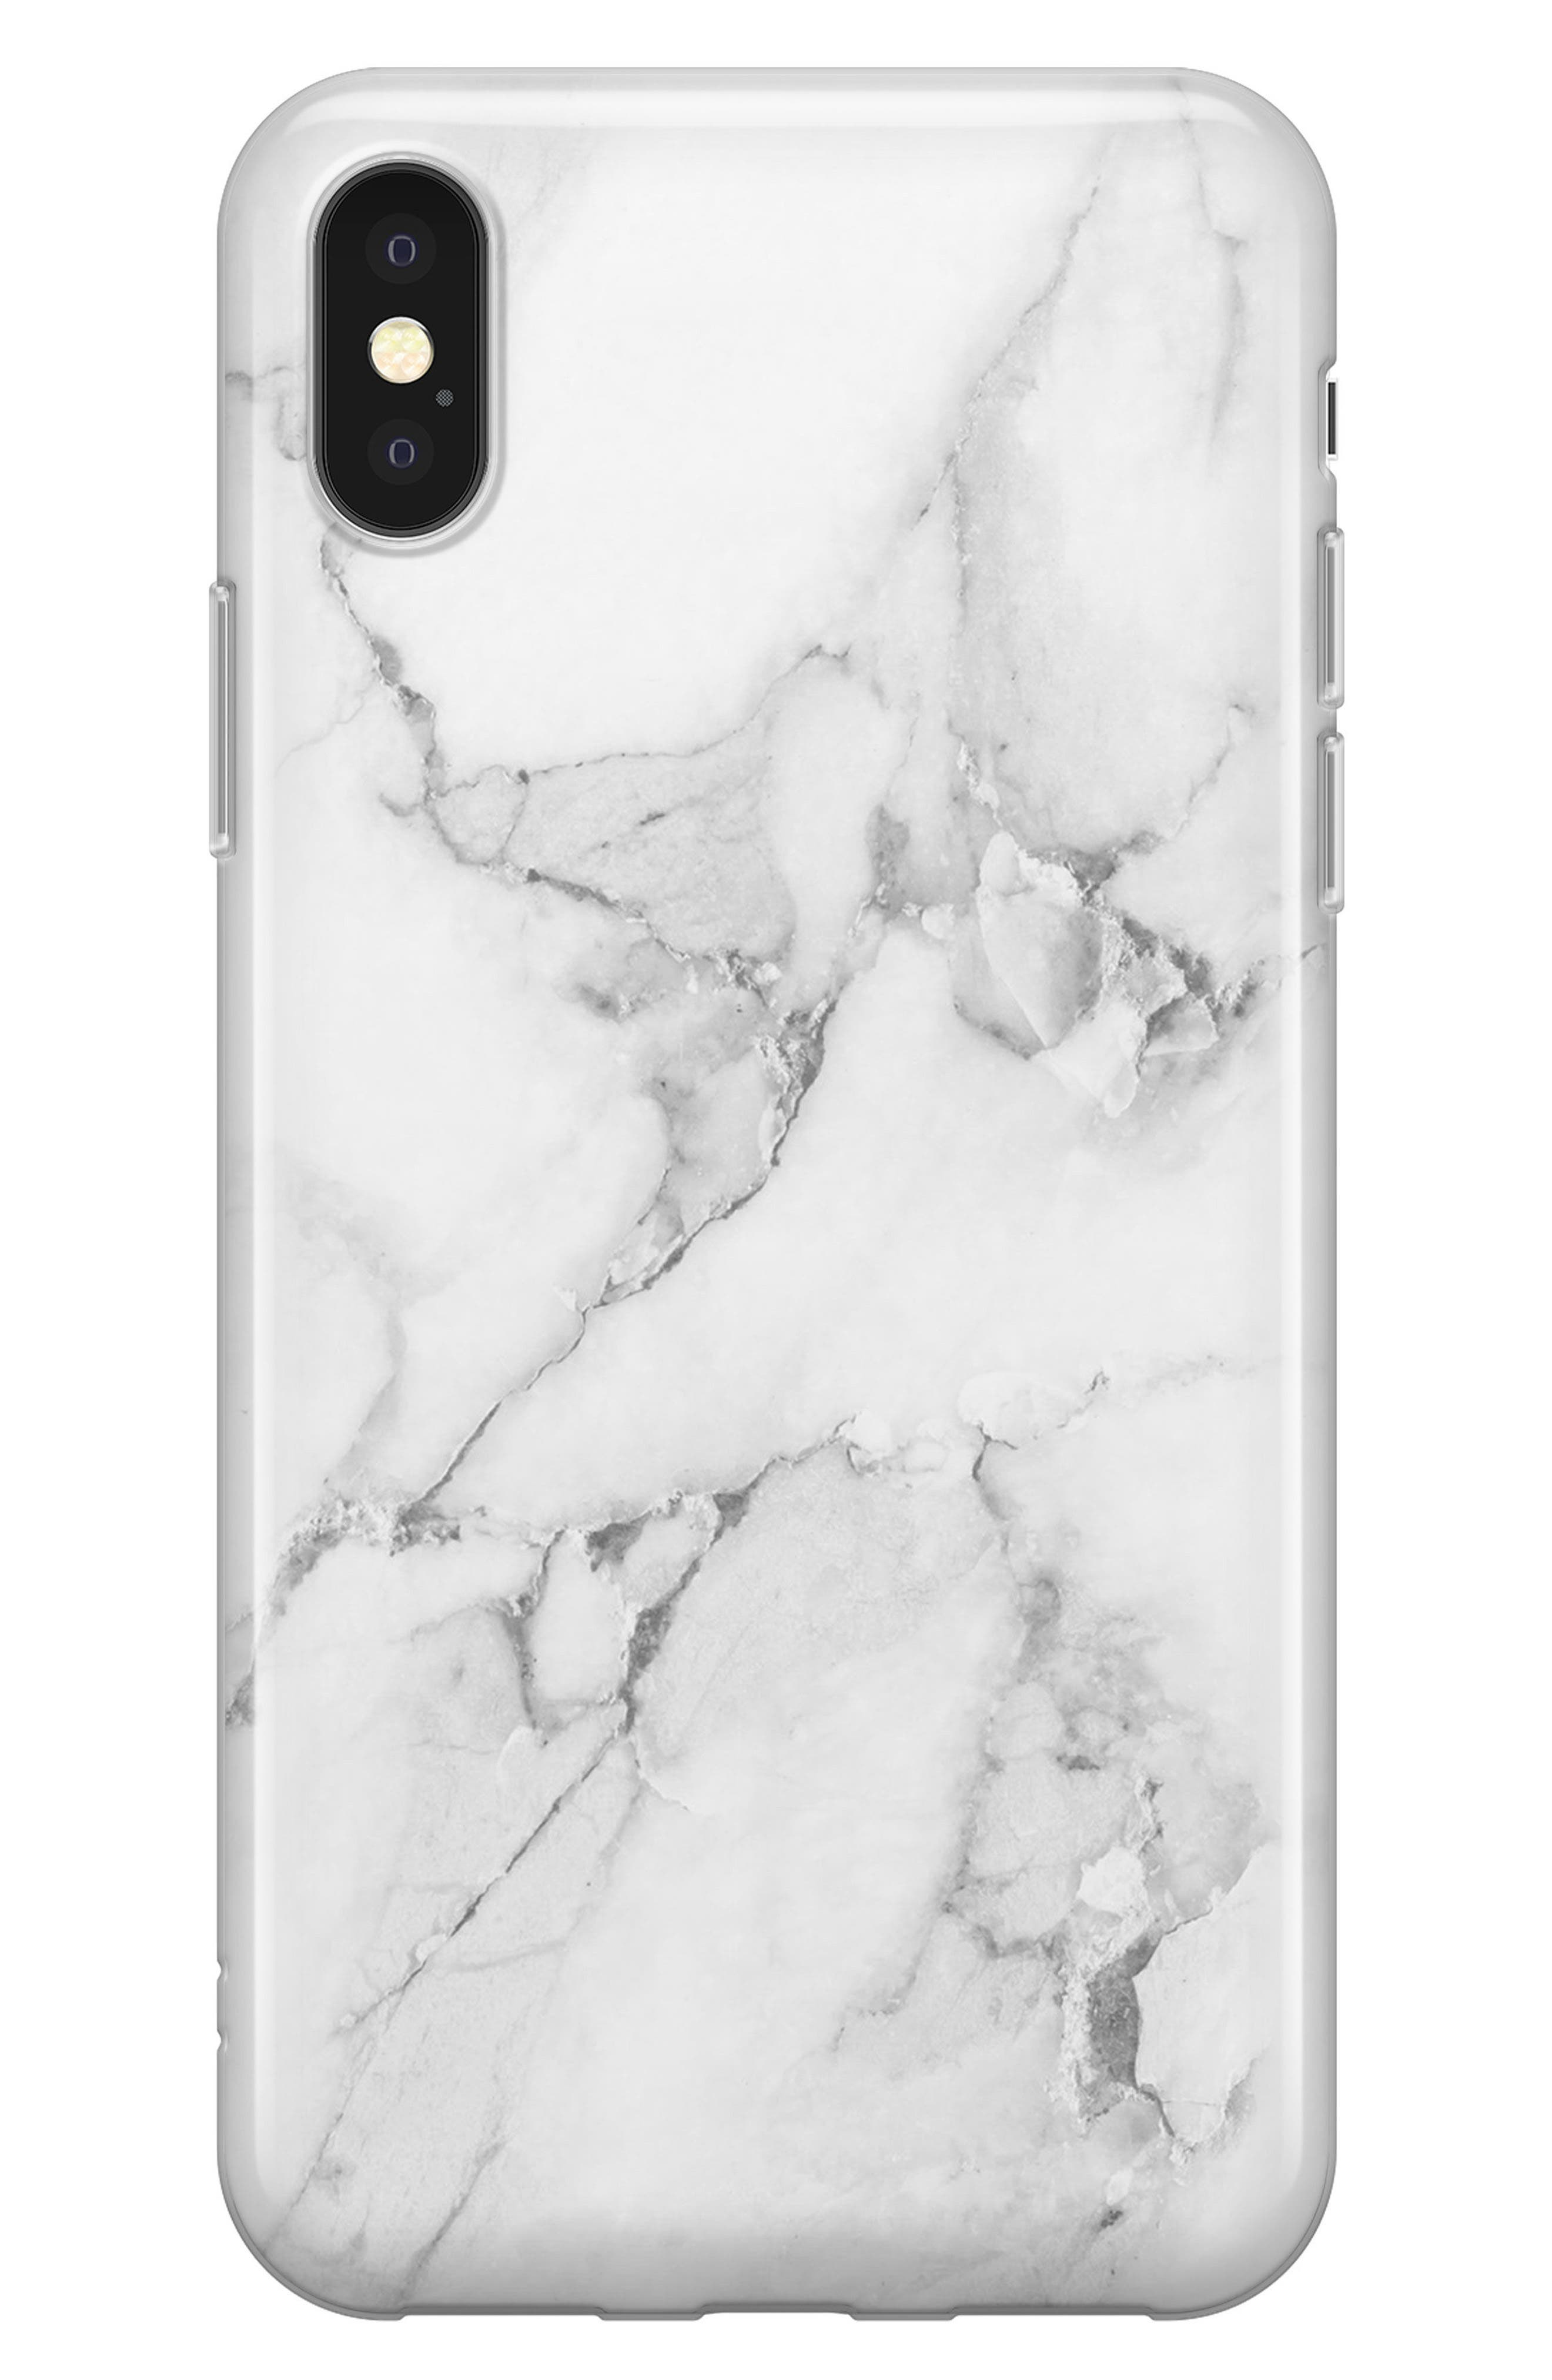 Main Image - Recover White Marble iPhone X Case